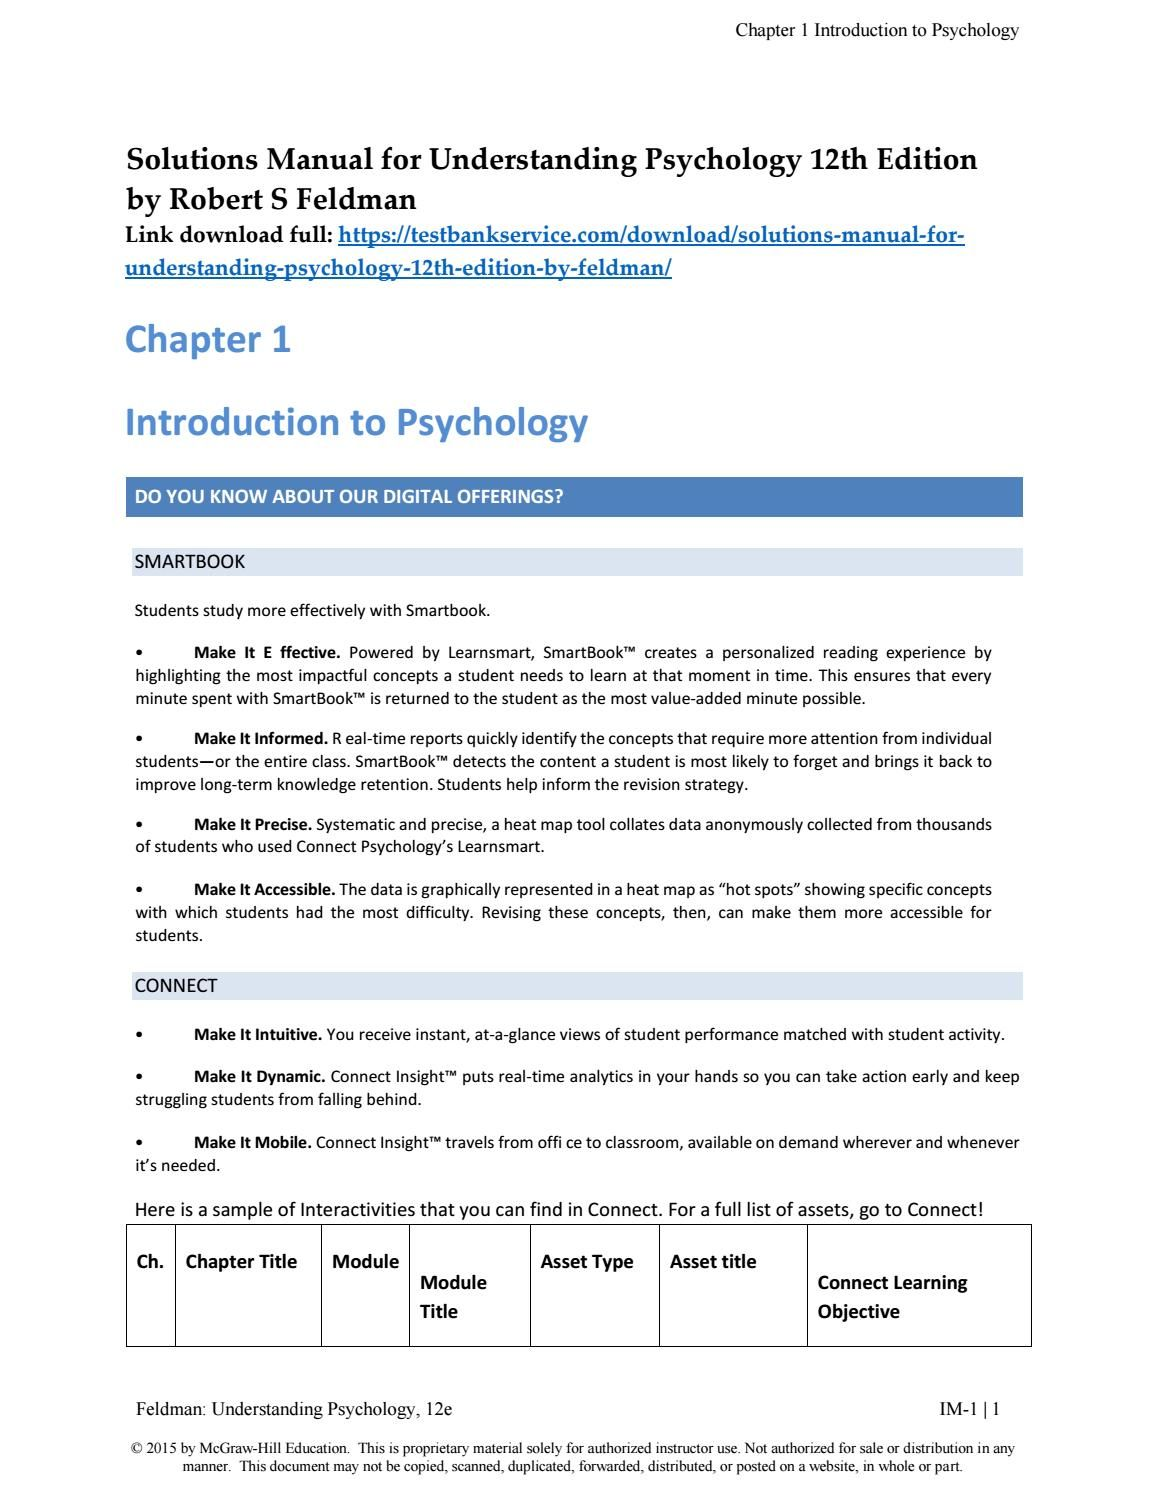 Understanding Psychology Th Edition By Robert S Feldman Soutions